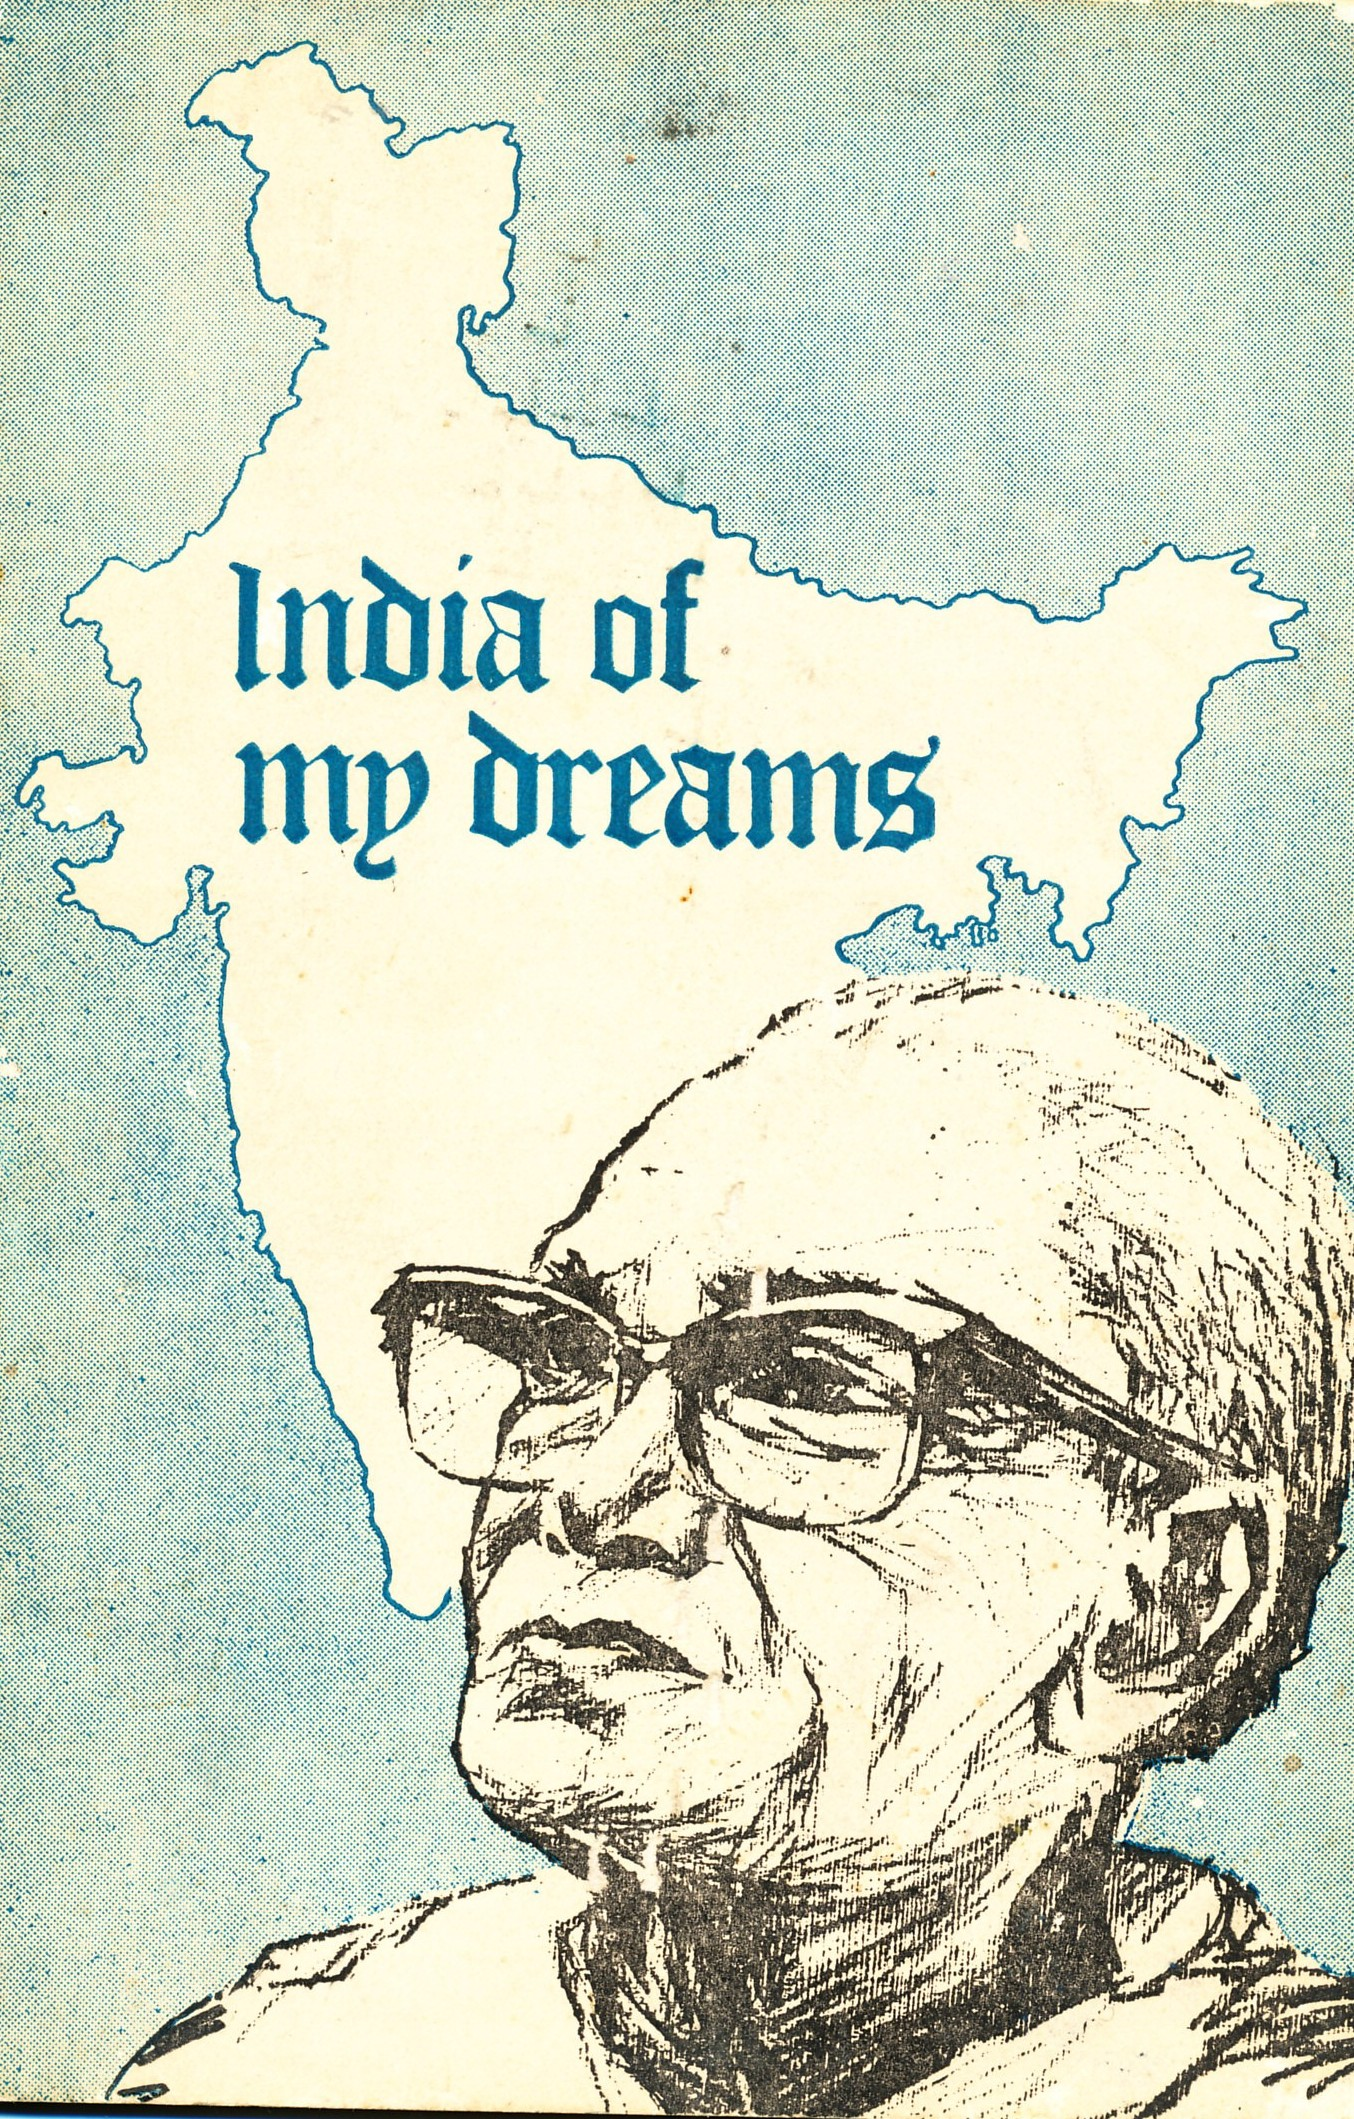 "essays on india of my dreams The india of my dreams ""imagine no possessions i wonder if you can no need for greed or hunger a brotherhood of man."